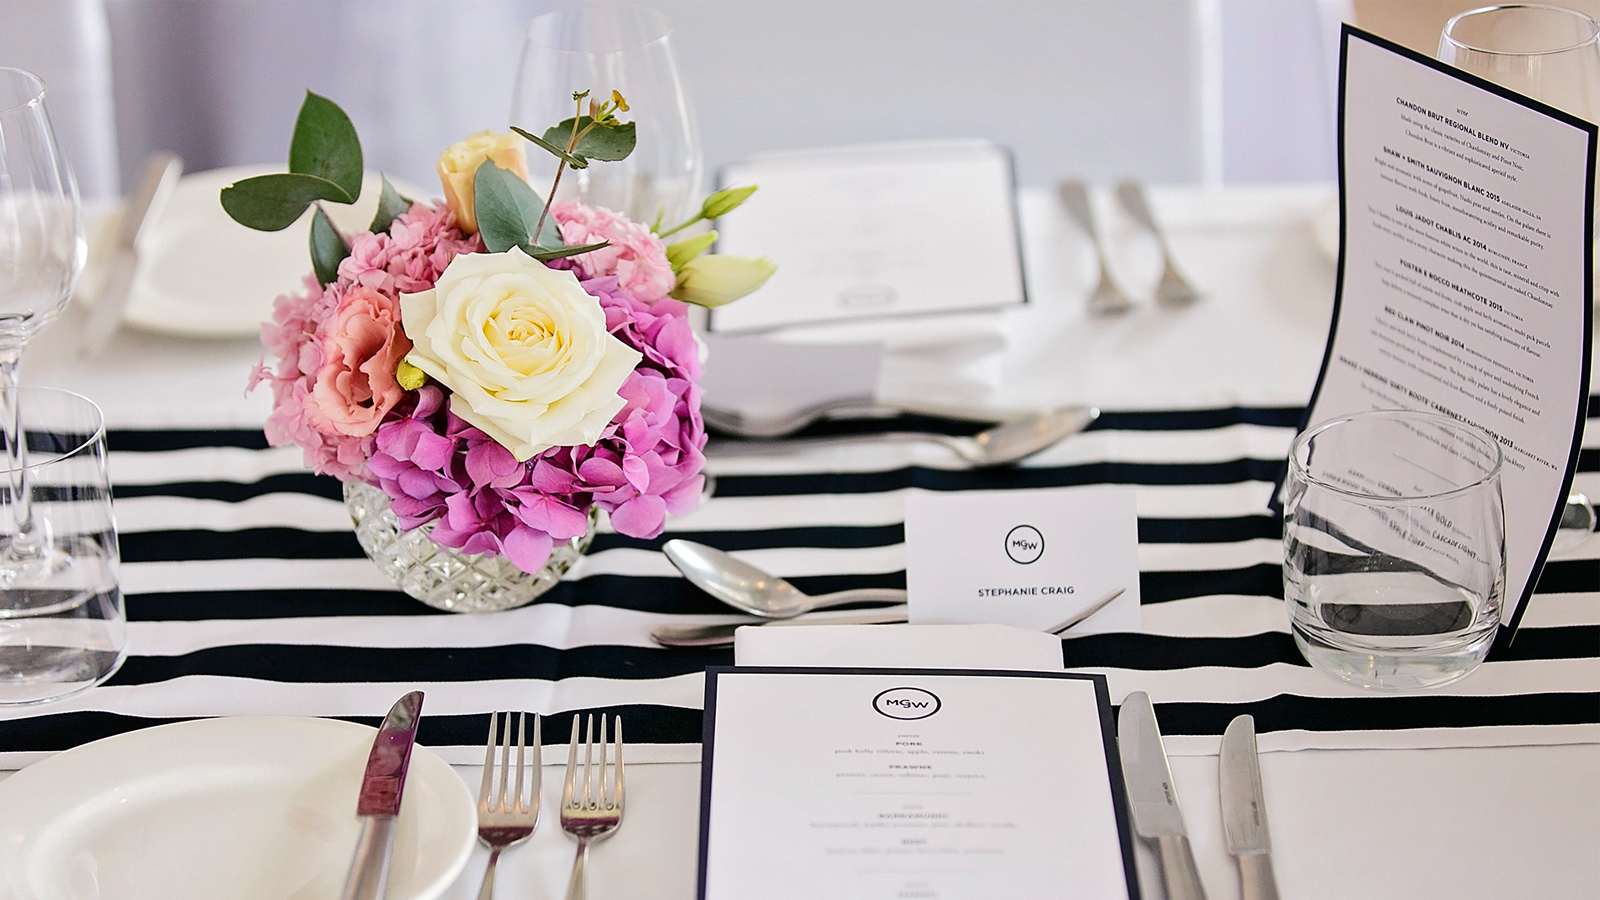 Wedding-Menu-Wine-List-Place-Names-Designed-By-ALSO-Agency-1